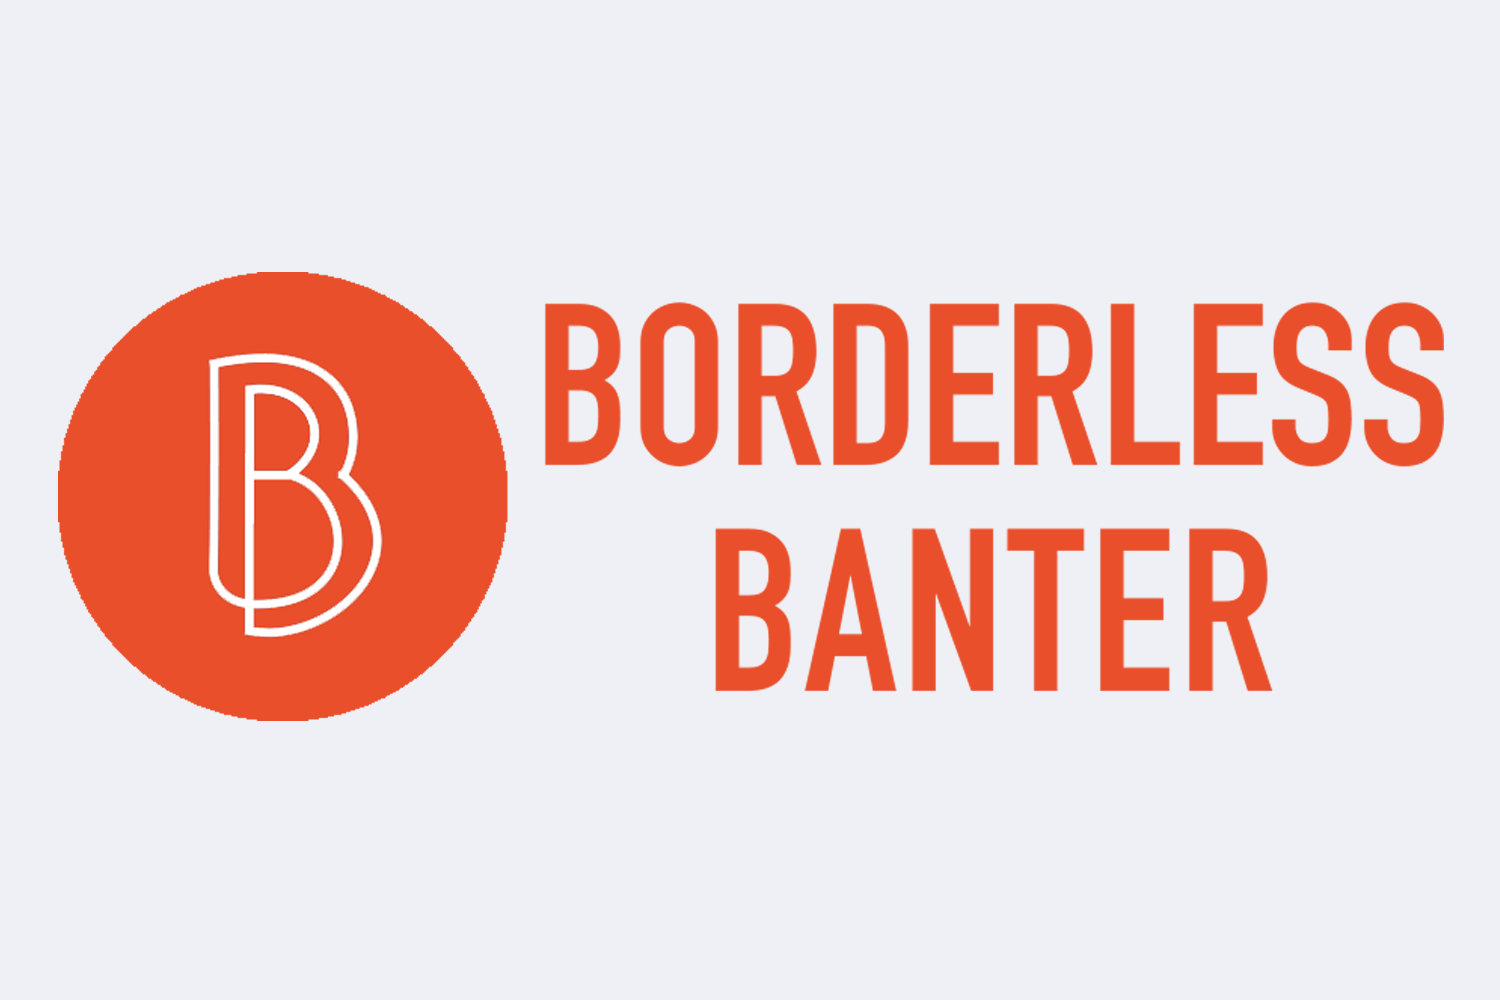 Borderless banter travel website, branding and design logo - Eva B.